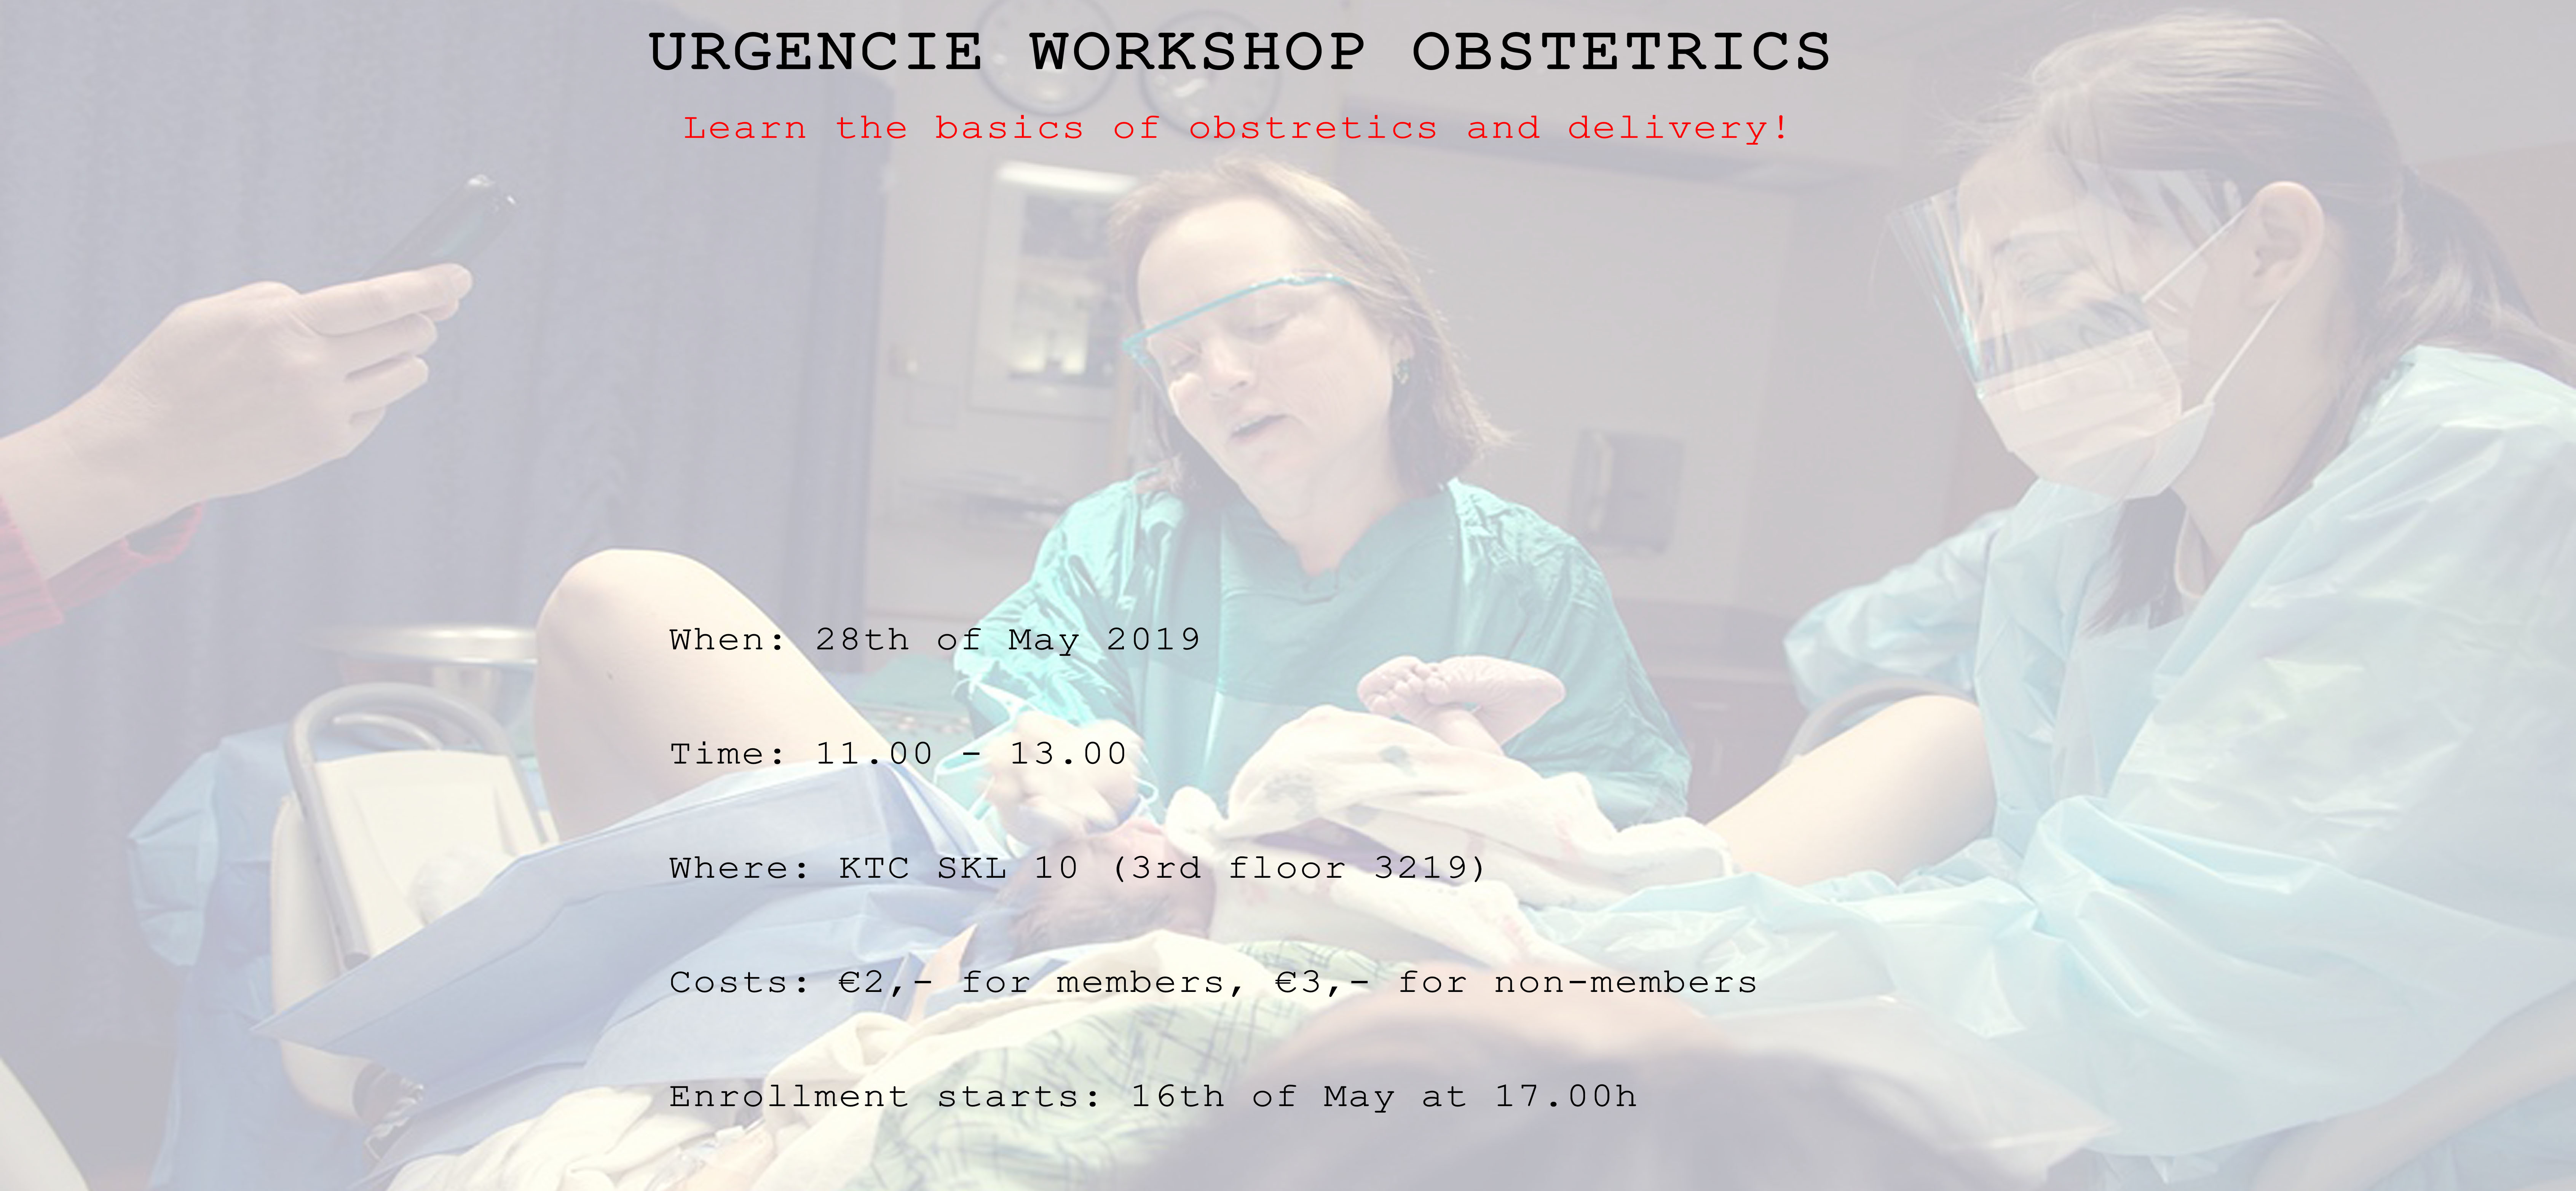 UrgenCie Workshop Obstetrics